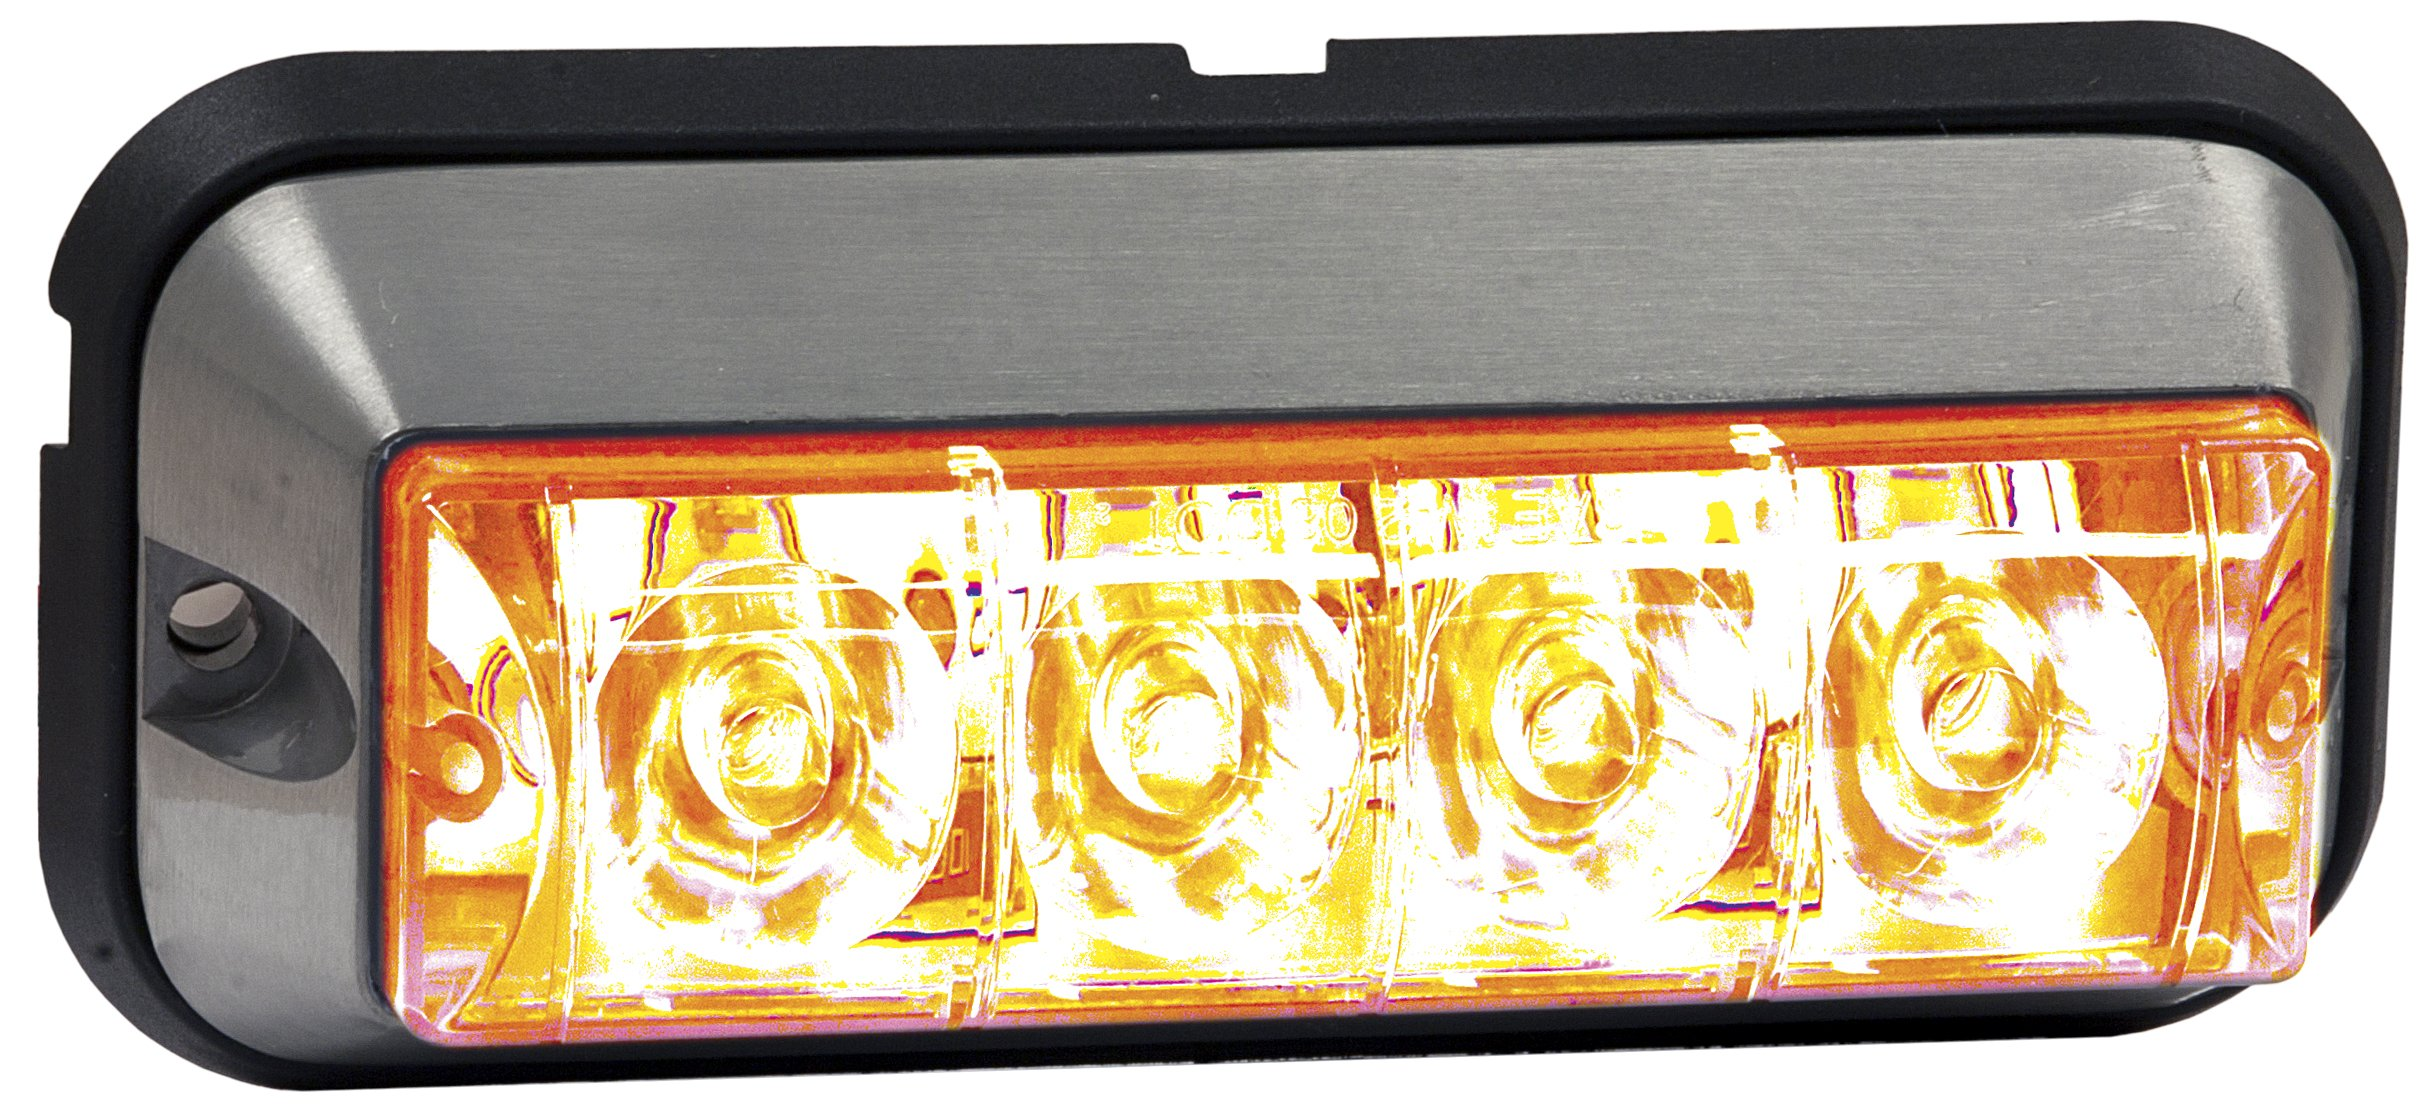 Buyers Products 4.875 Inch Amber Rectangular LED Strobe Light (8891004)